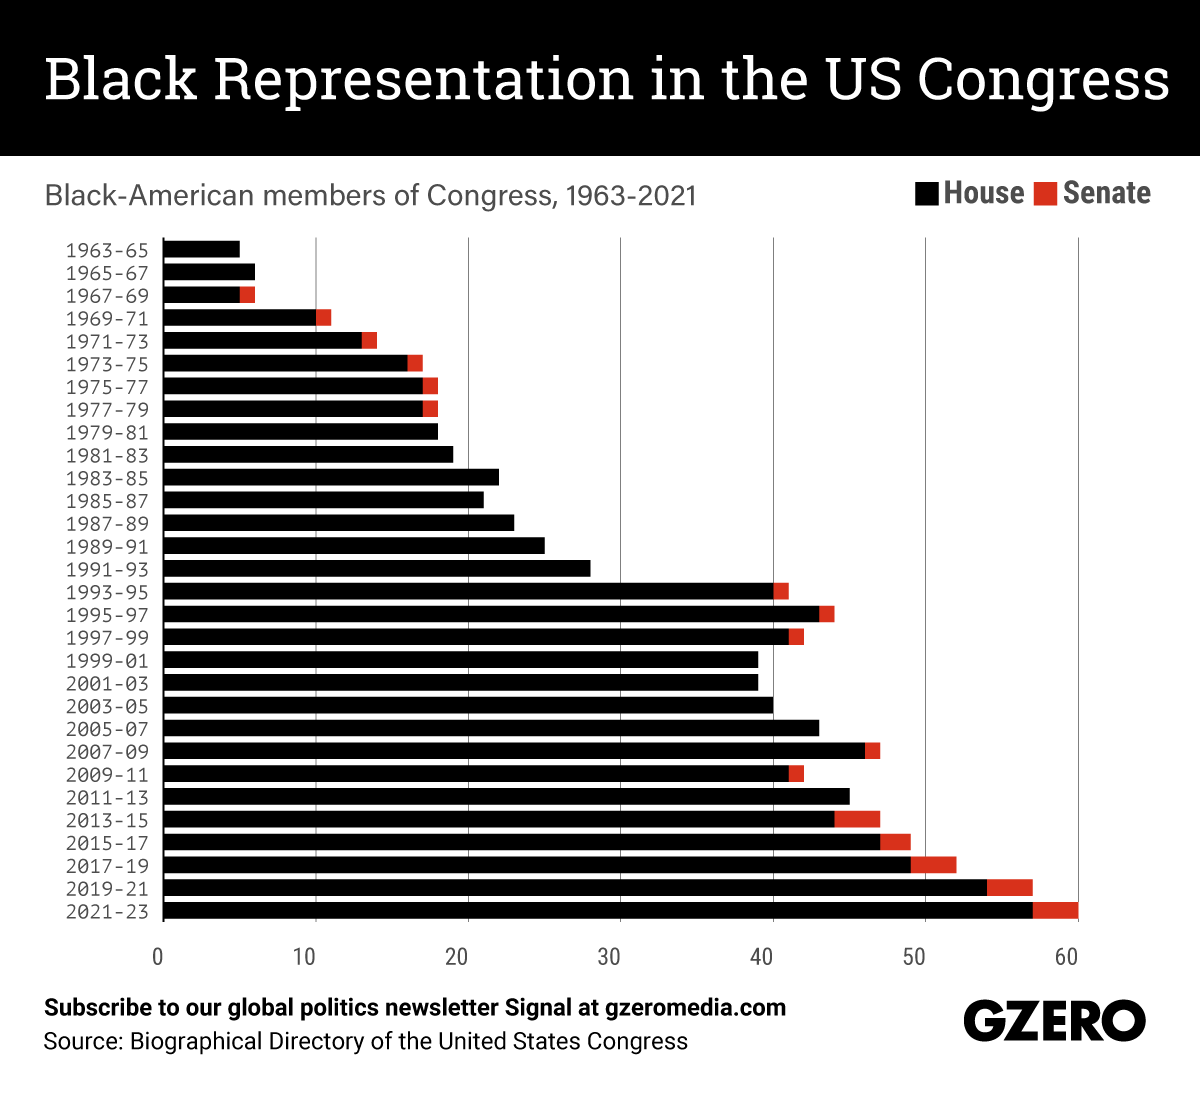 The Graphic Truth: Black representation in the US Congress